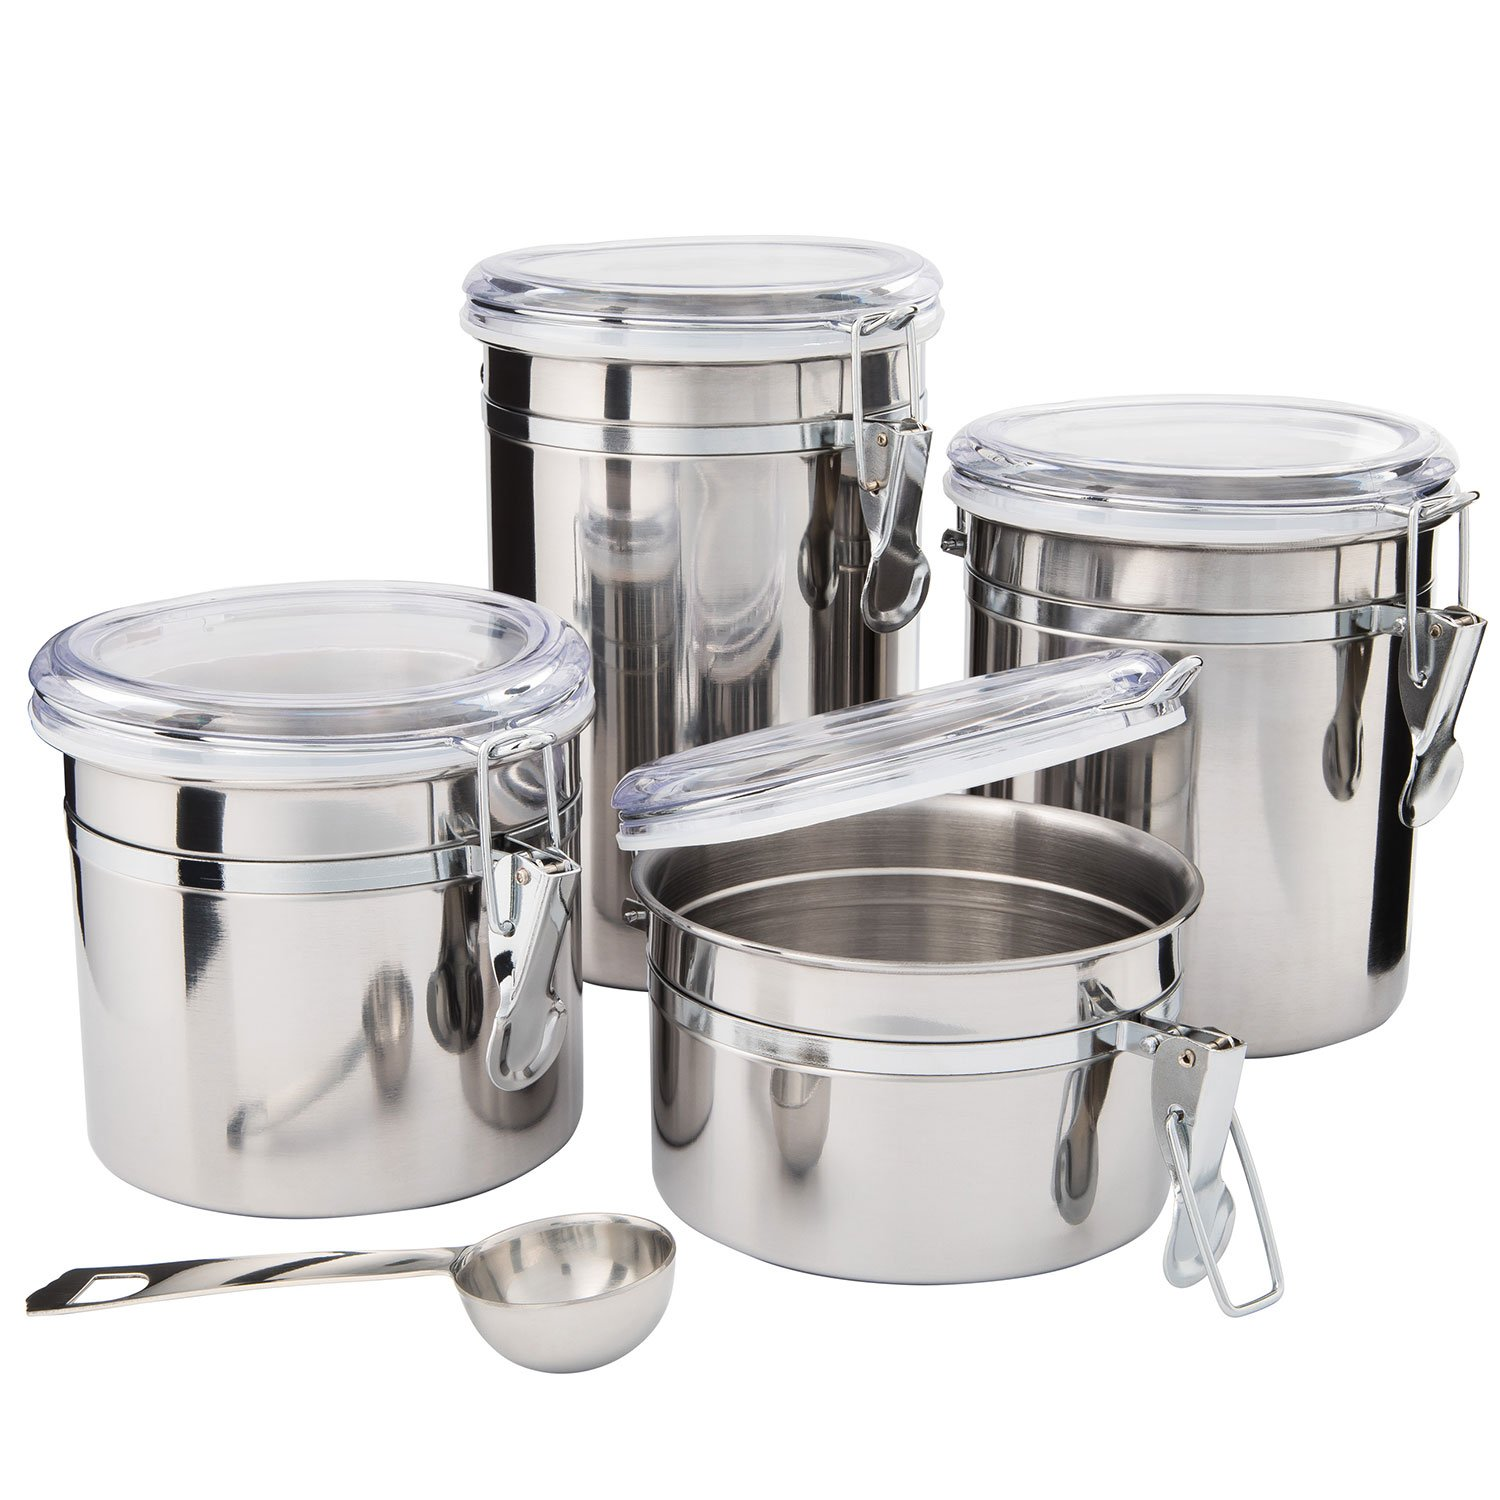 SilverOnyx Kitchen Canisters Stainless Steel   4pc Set